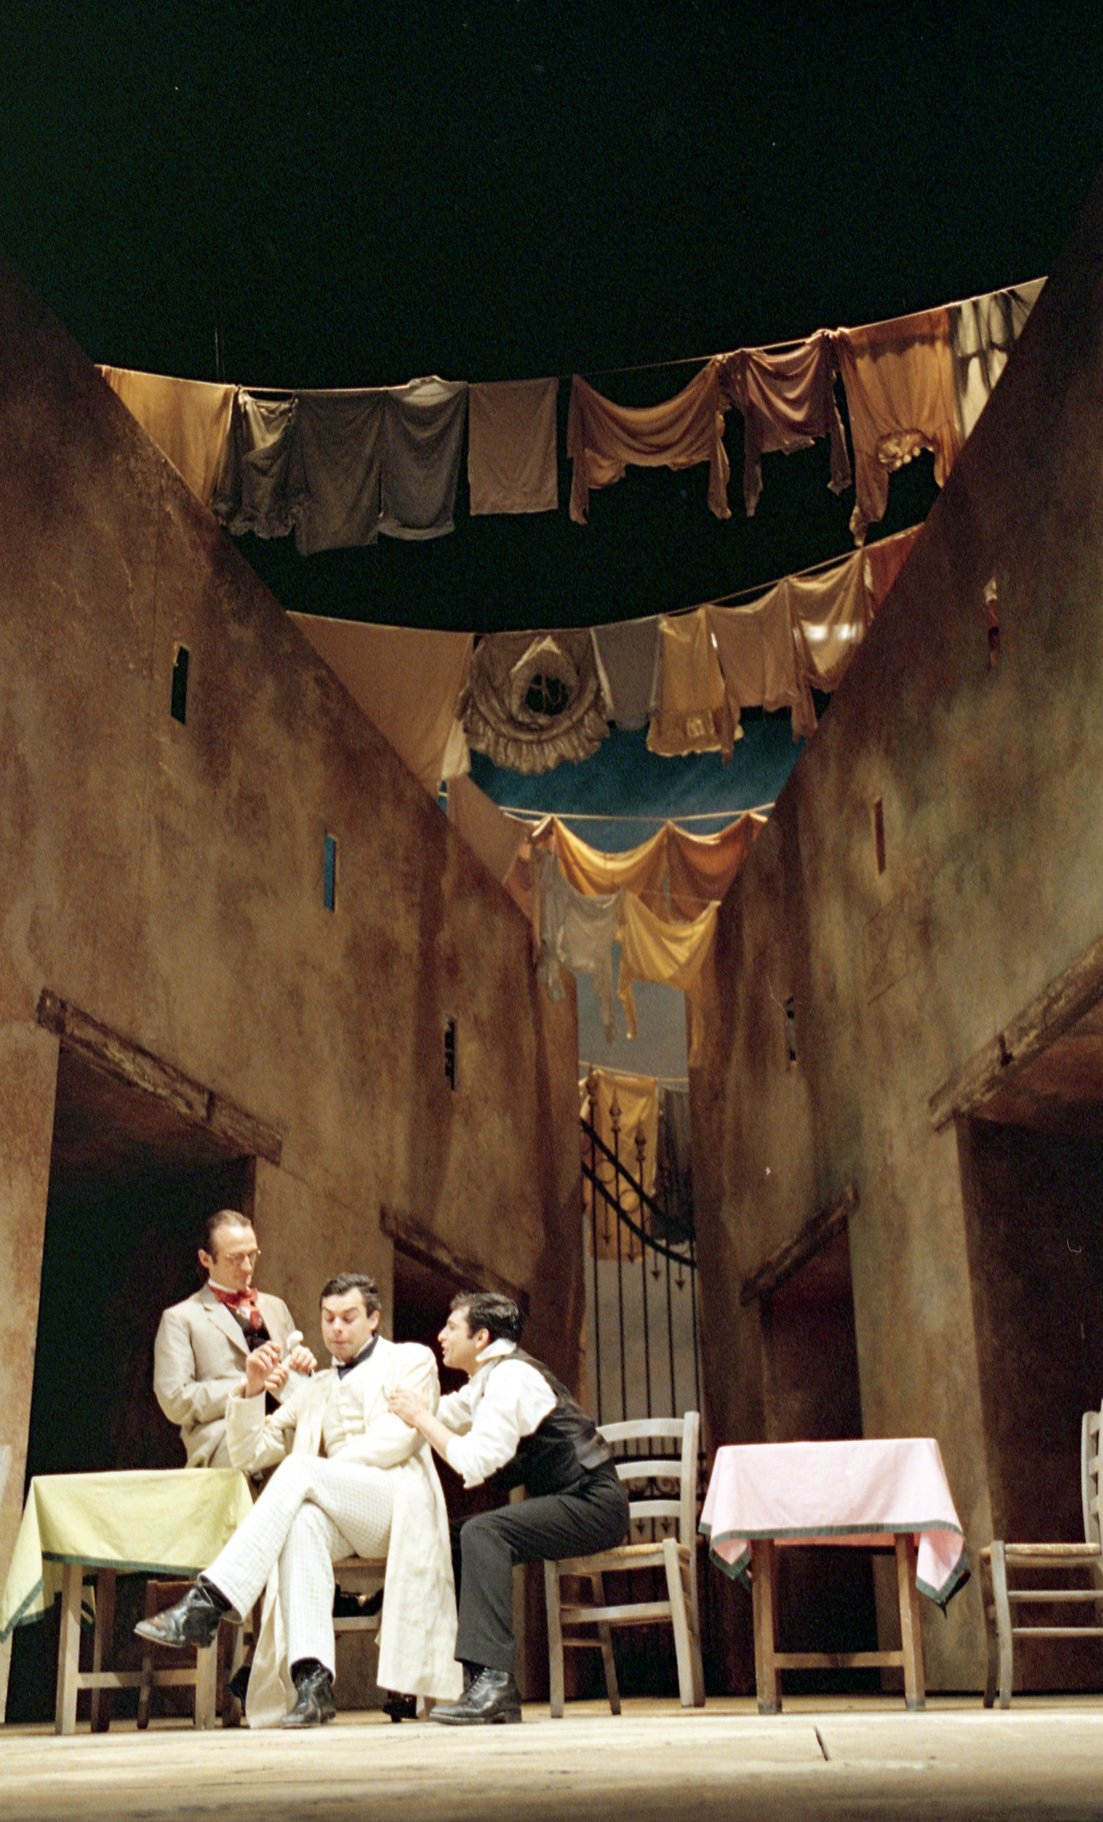 Benvolio, Mercutio and Romeo sit in an alleyway on stage with washing hanging over the head.